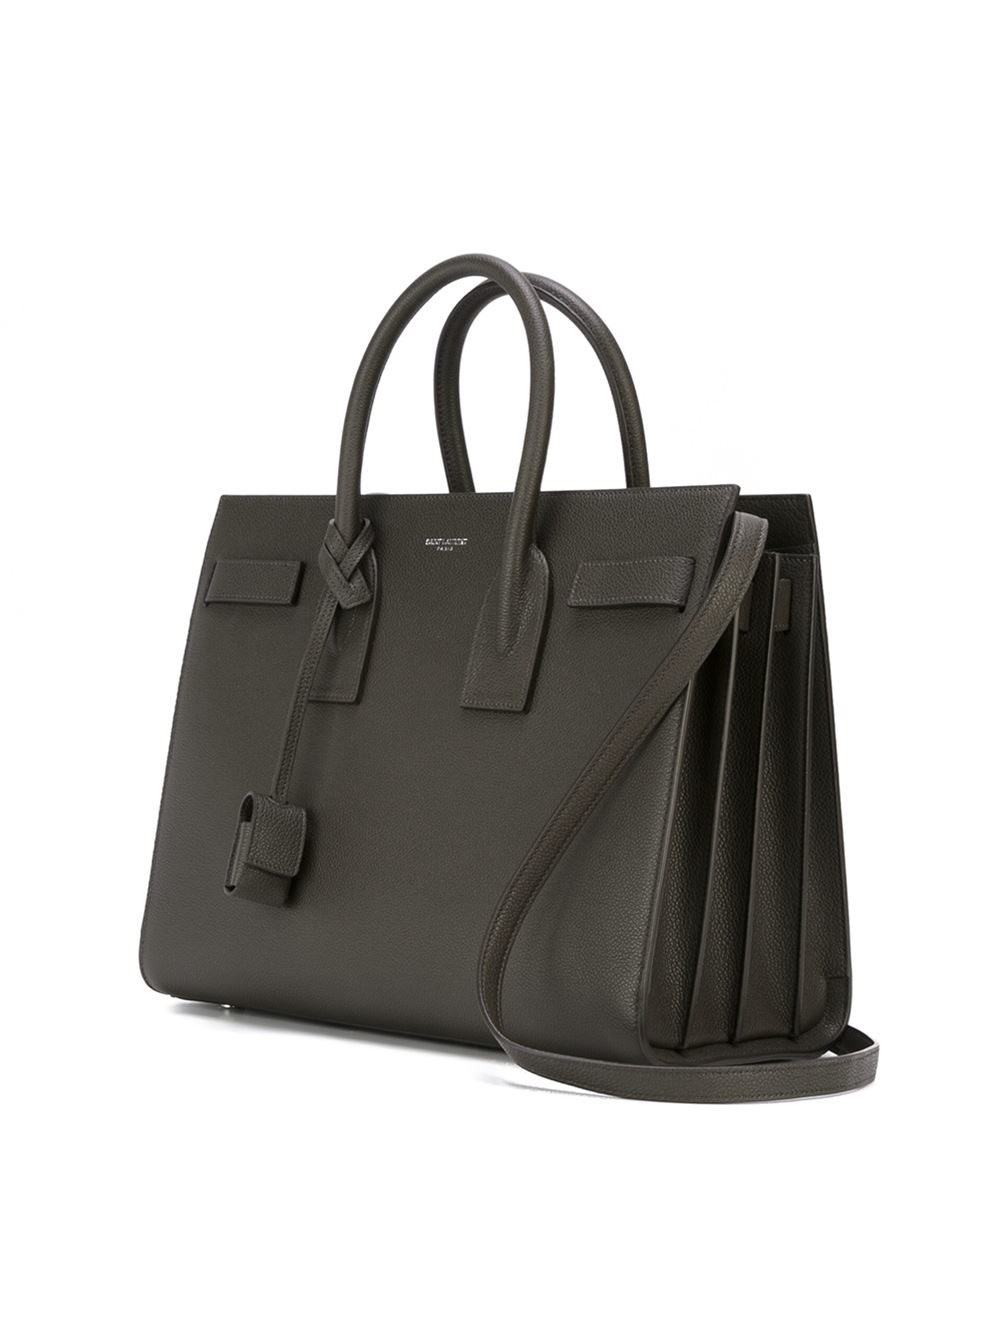 saint laurent small 39 sac de jour 39 tote in gray grey lyst. Black Bedroom Furniture Sets. Home Design Ideas